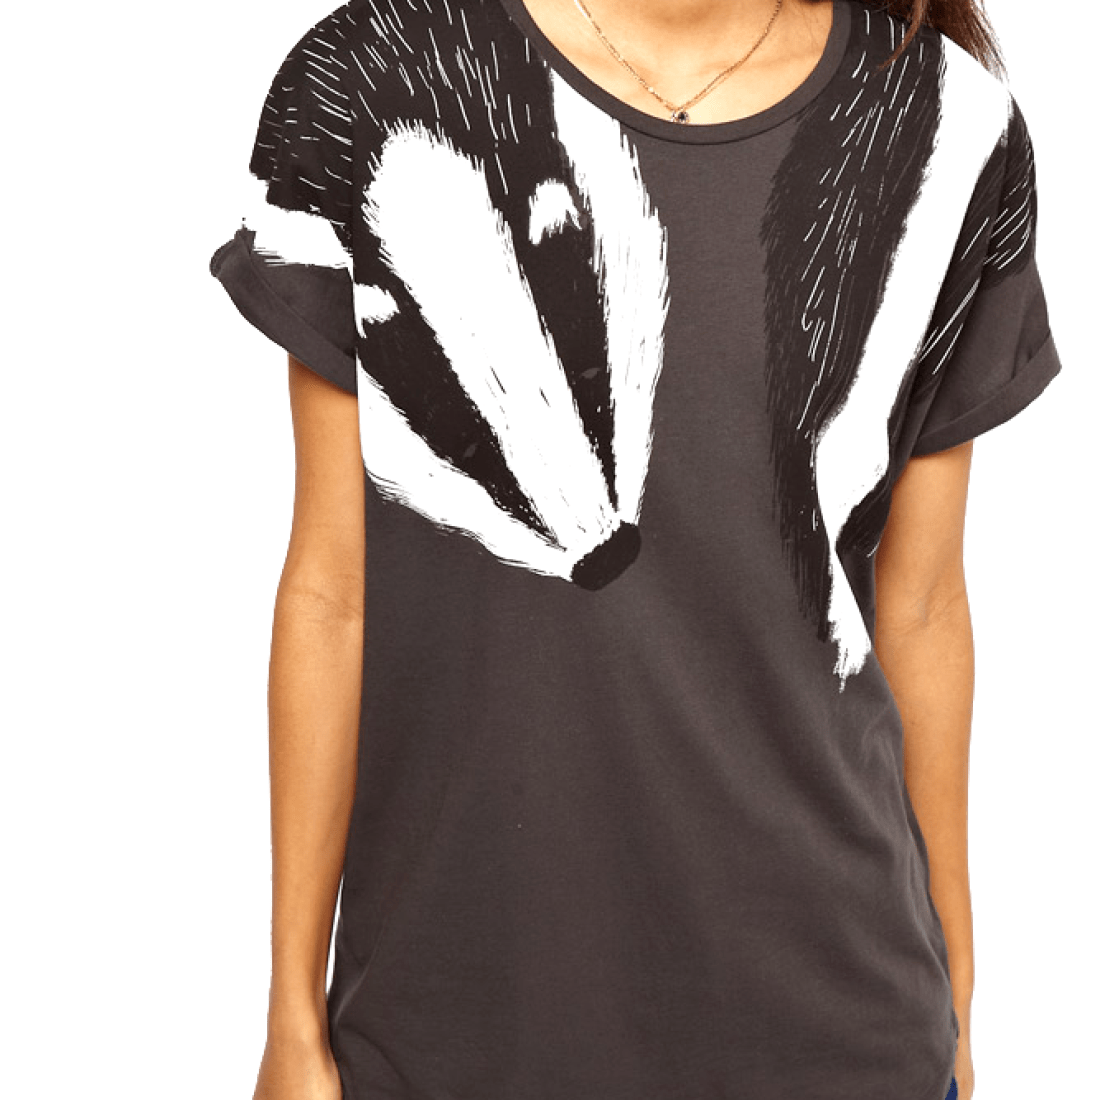 Adorable Animal Inspired Badger Scarf Print Graphic T-Shirt for Women